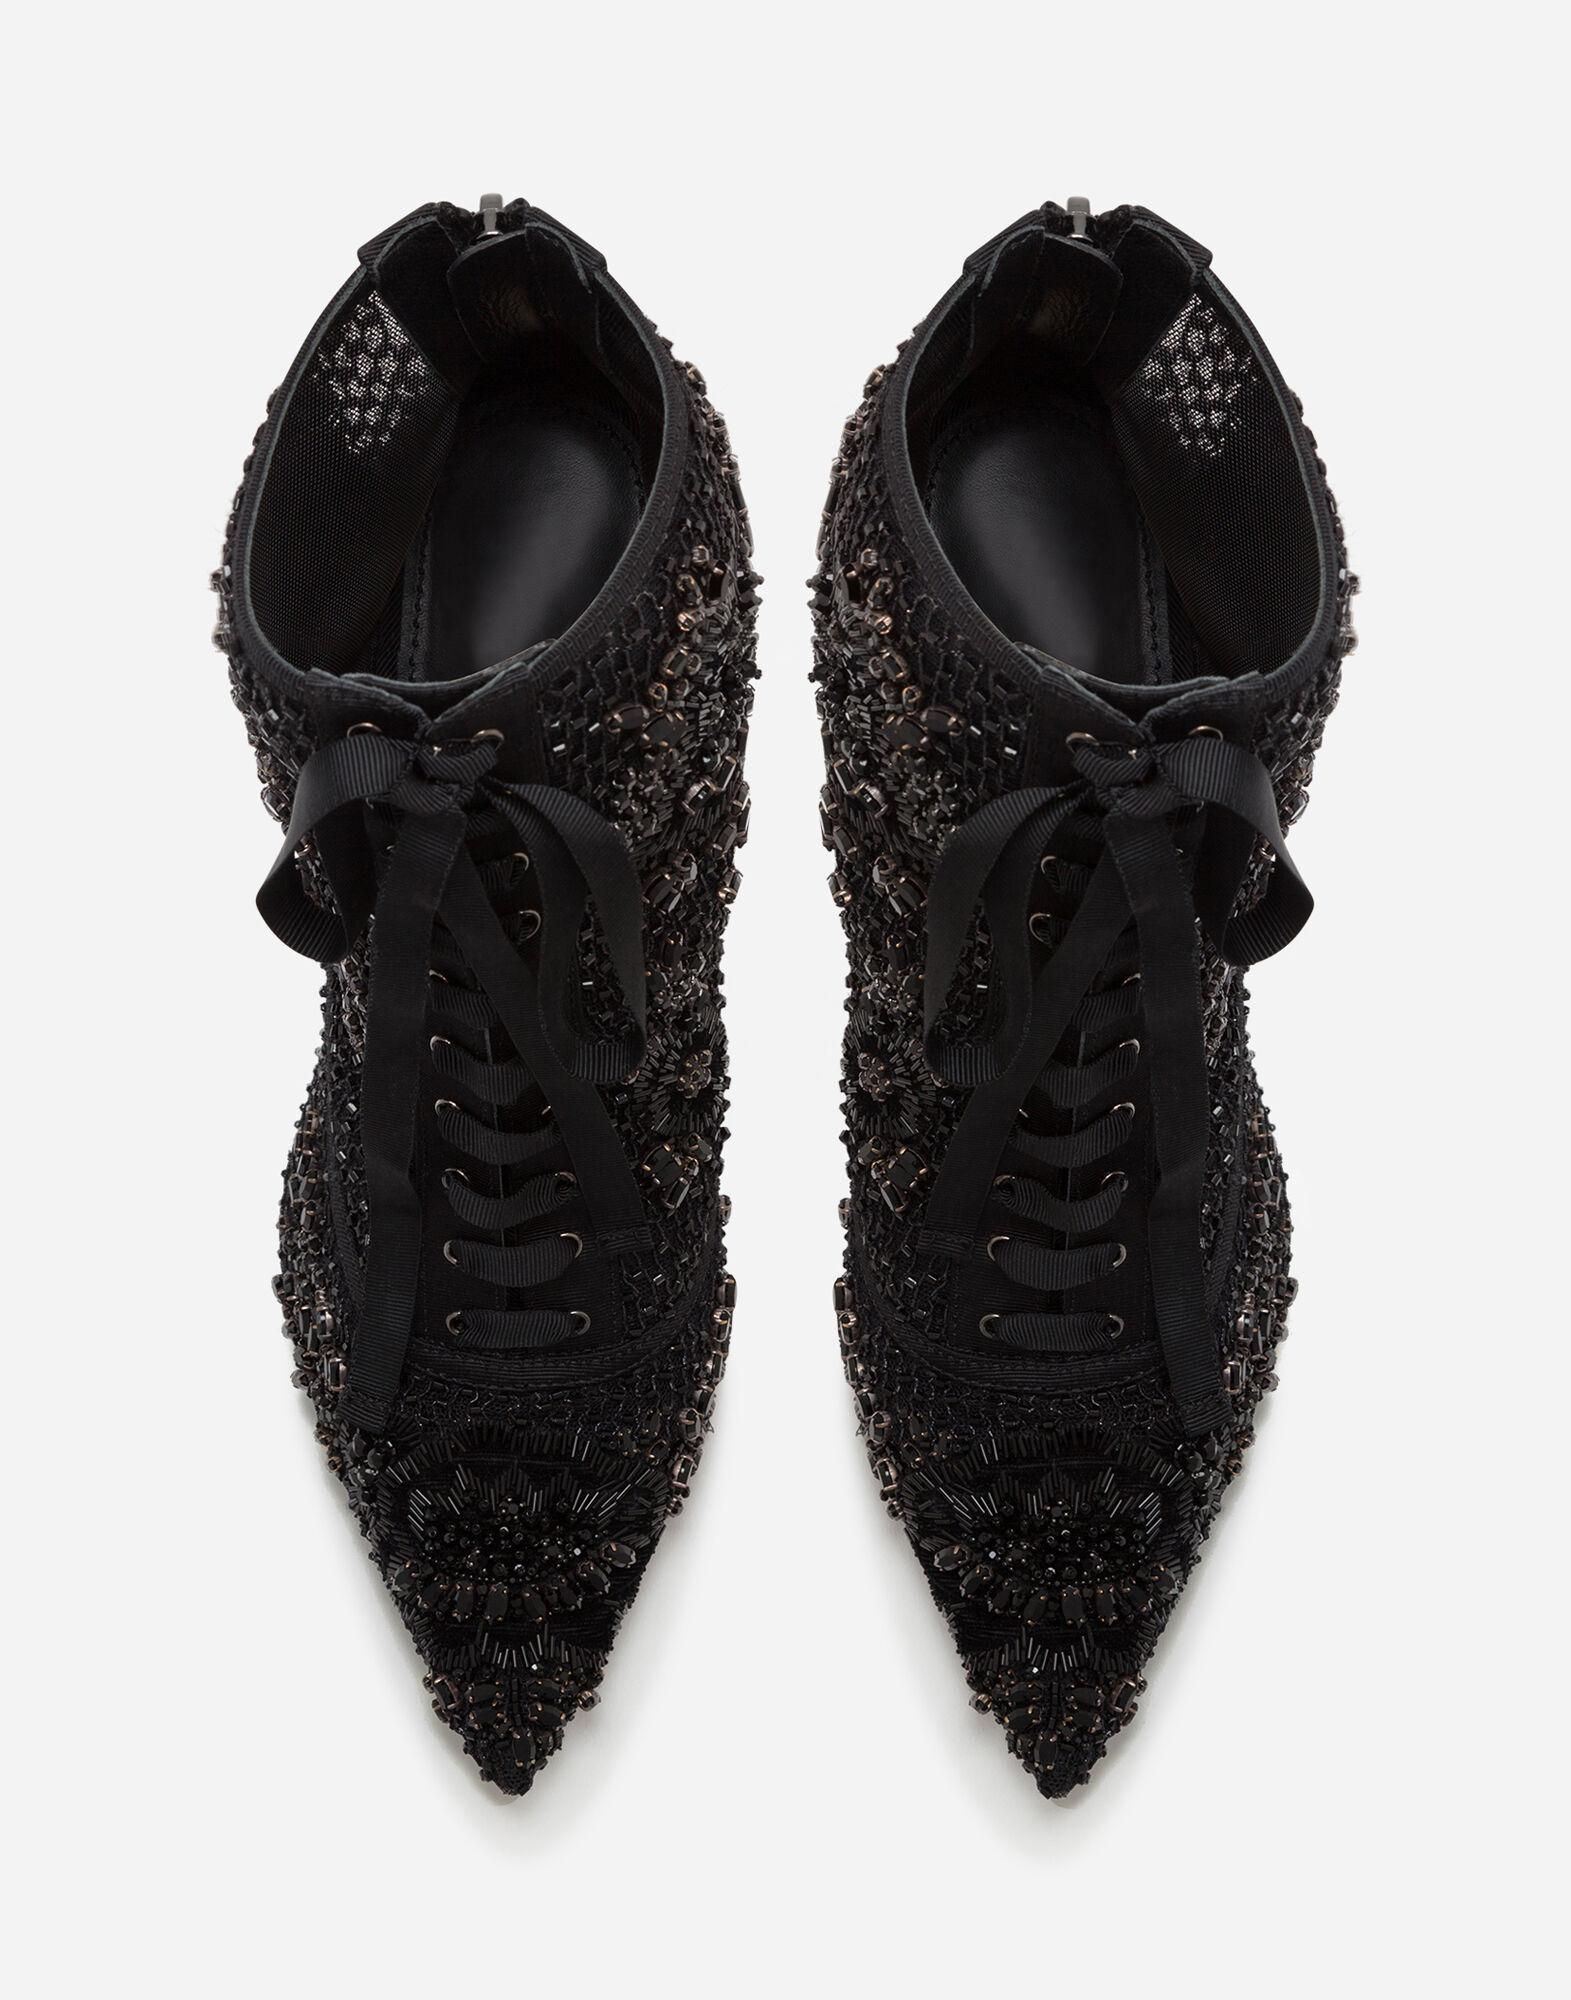 Booties with embroidery, rhinestone and bead embellishment 3